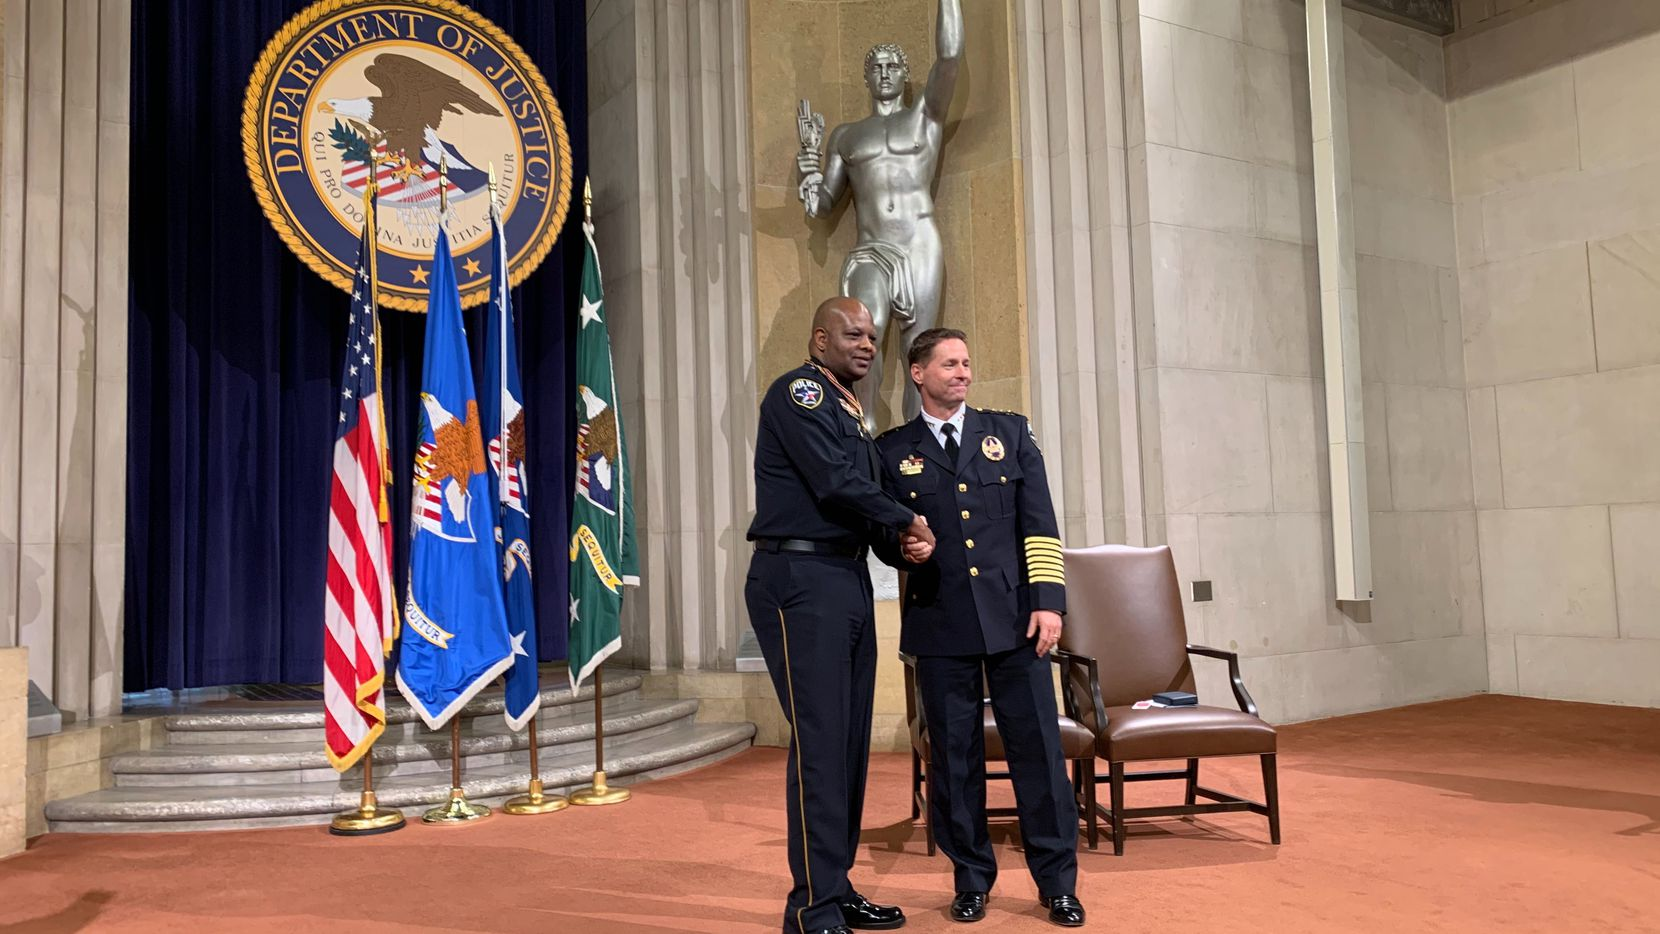 Irving Police Officer Jon Plunkett (left) shakes hands with Irving Police Chief Jeff Spivey (right) following a ceremony where Plunkett was given the Attorney General's Award for Distinguished Service in Policing on Dec. 3, 2019, at the Department of Justice in downtown Washington, D.C.